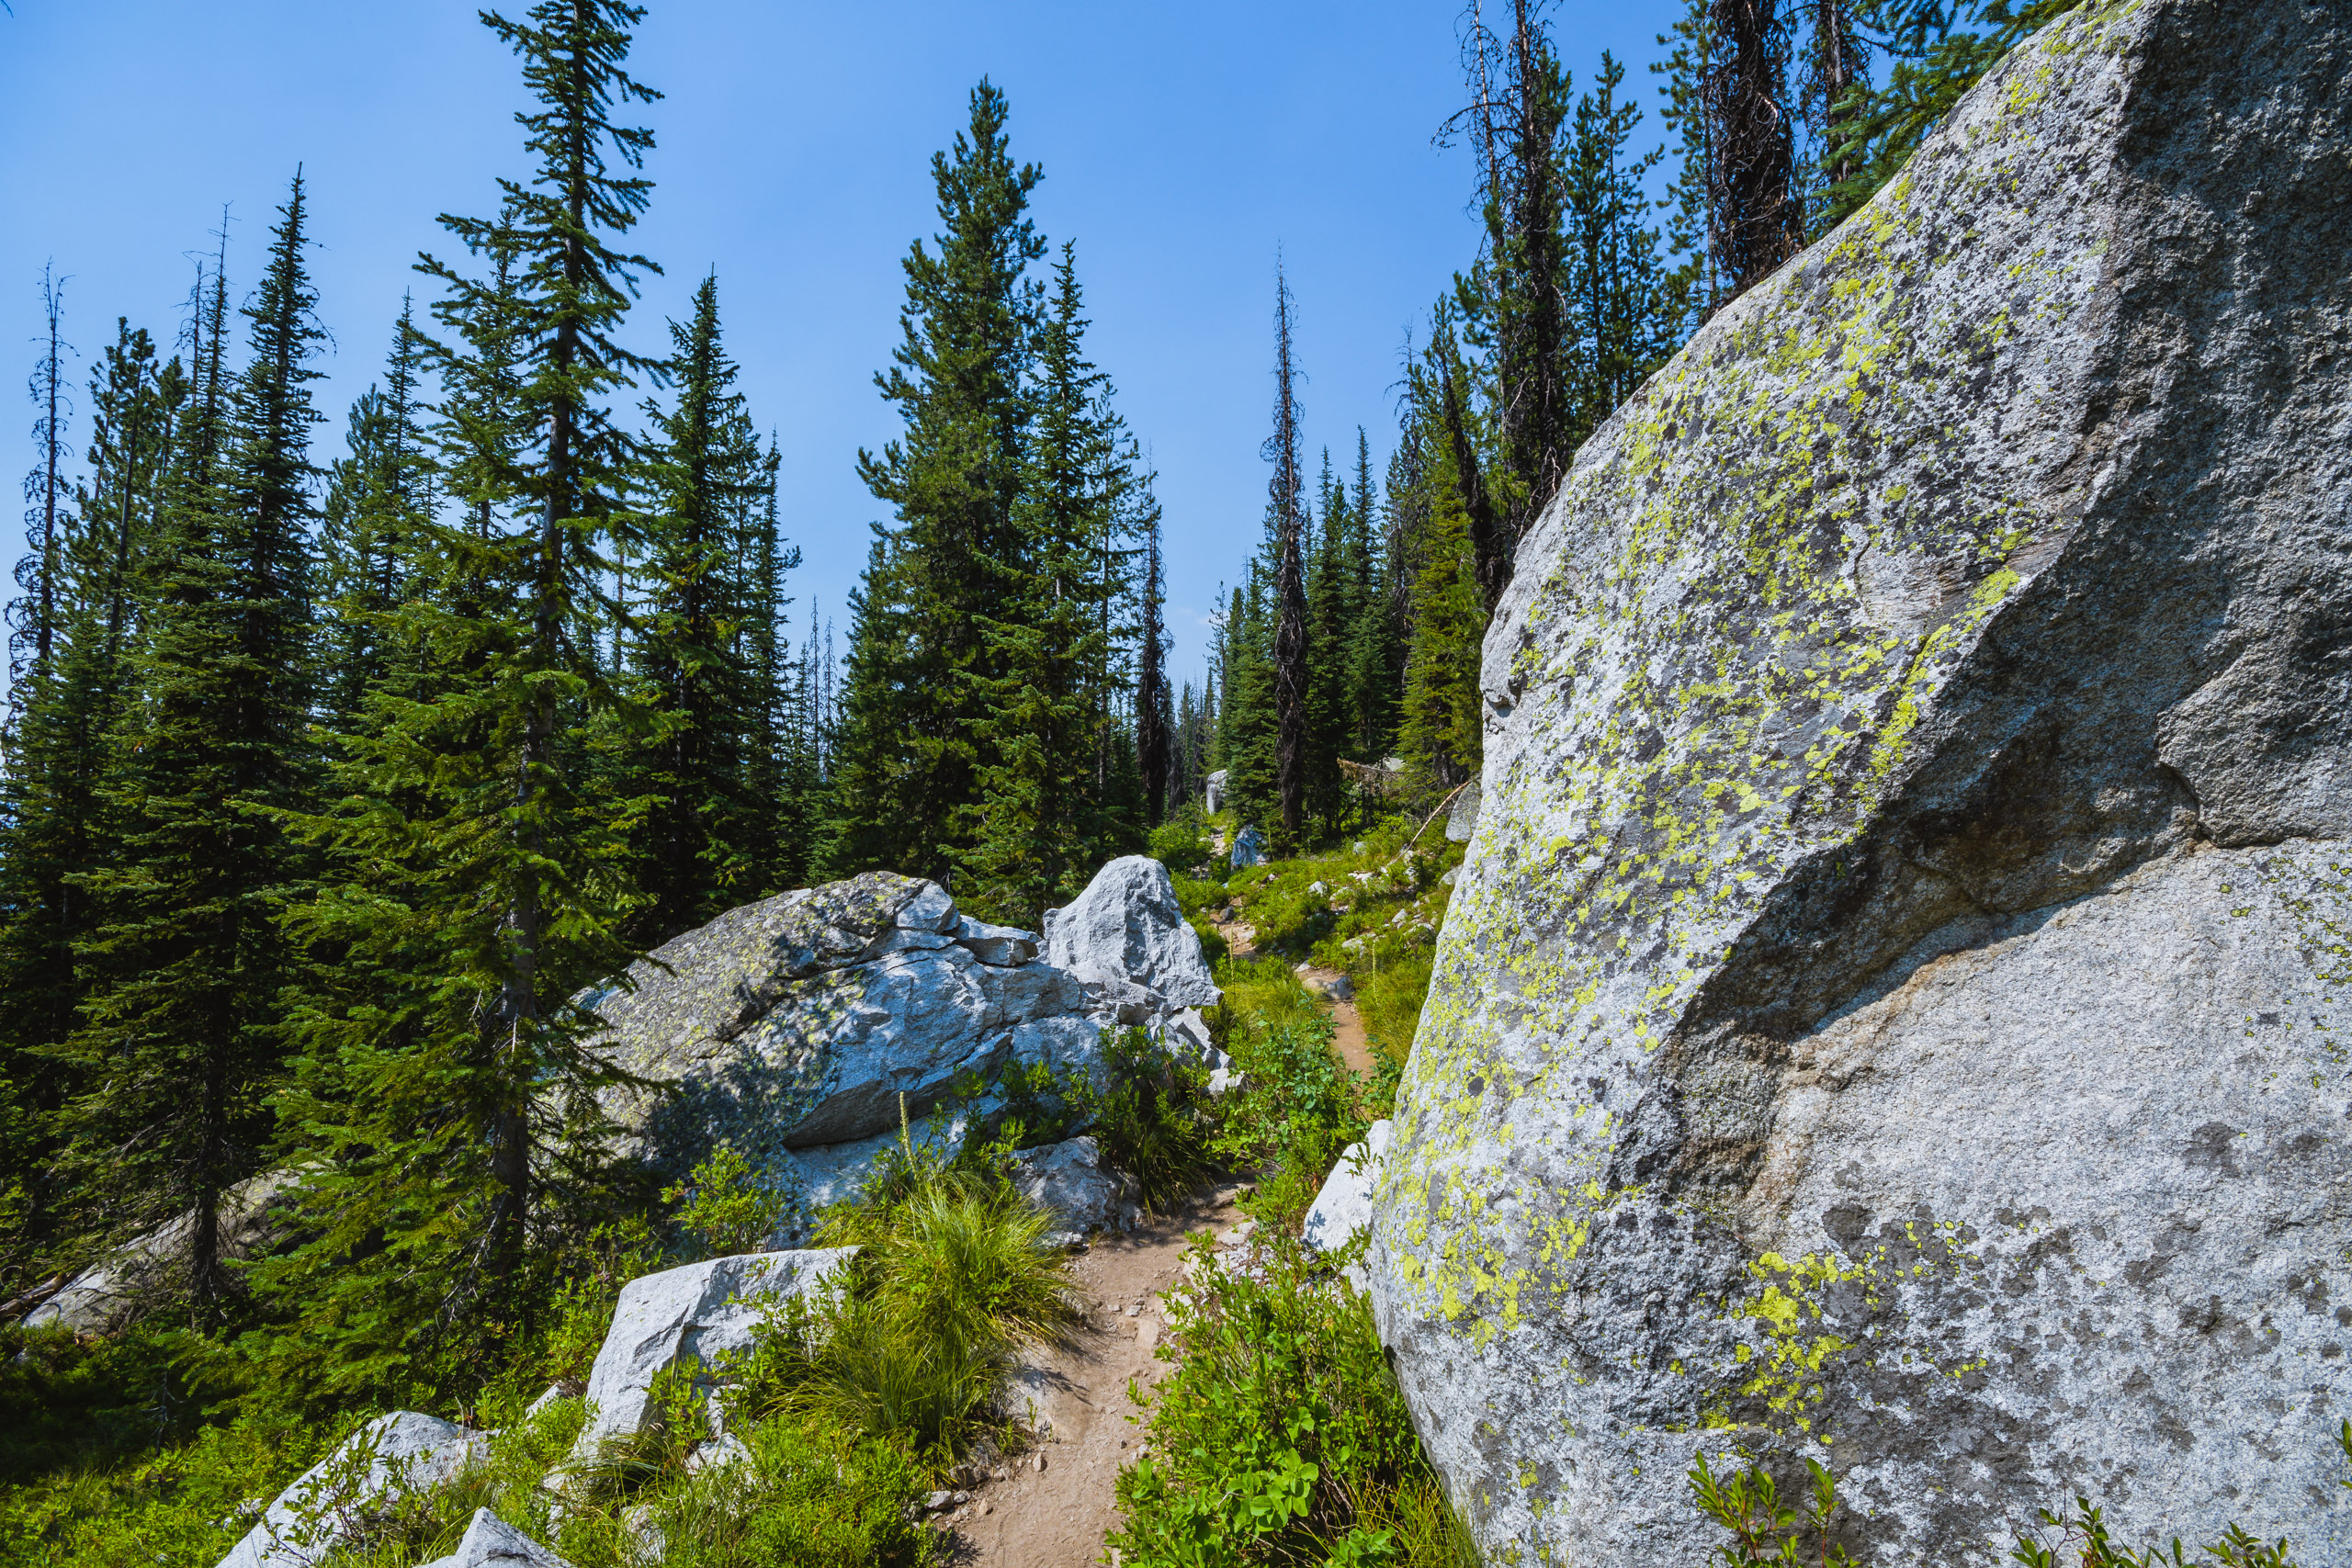 The trail weaves its way through and around large granite boulders